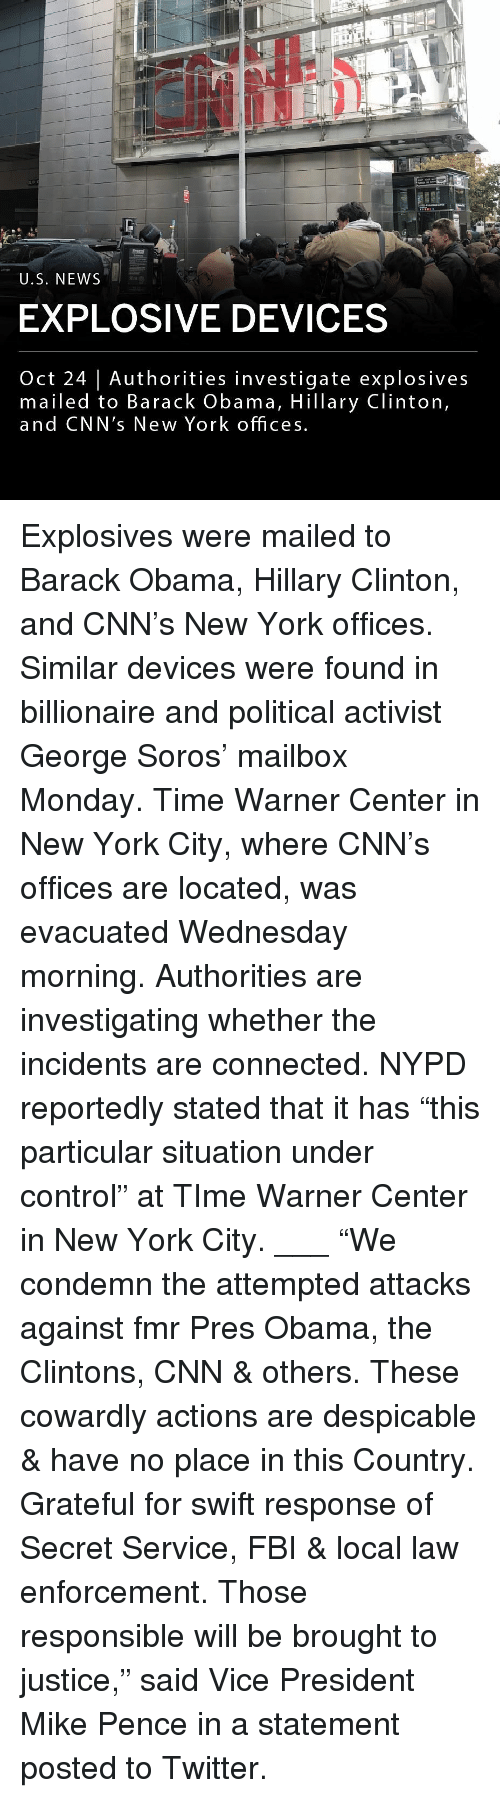 "explosive: U.S. NEWS  EXPLOSIVE DEVICES  Oct 24 | Authorities investigate explosives  mailed to Barack Obama, Hillary Clinton,  and CNN's New York offices Explosives were mailed to Barack Obama, Hillary Clinton, and CNN's New York offices. Similar devices were found in billionaire and political activist George Soros' mailbox Monday. Time Warner Center in New York City, where CNN's offices are located, was evacuated Wednesday morning. Authorities are investigating whether the incidents are connected. NYPD reportedly stated that it has ""this particular situation under control"" at TIme Warner Center in New York City. ___ ""We condemn the attempted attacks against fmr Pres Obama, the Clintons, CNN & others. These cowardly actions are despicable & have no place in this Country. Grateful for swift response of Secret Service, FBI & local law enforcement. Those responsible will be brought to justice,"" said Vice President Mike Pence in a statement posted to Twitter."